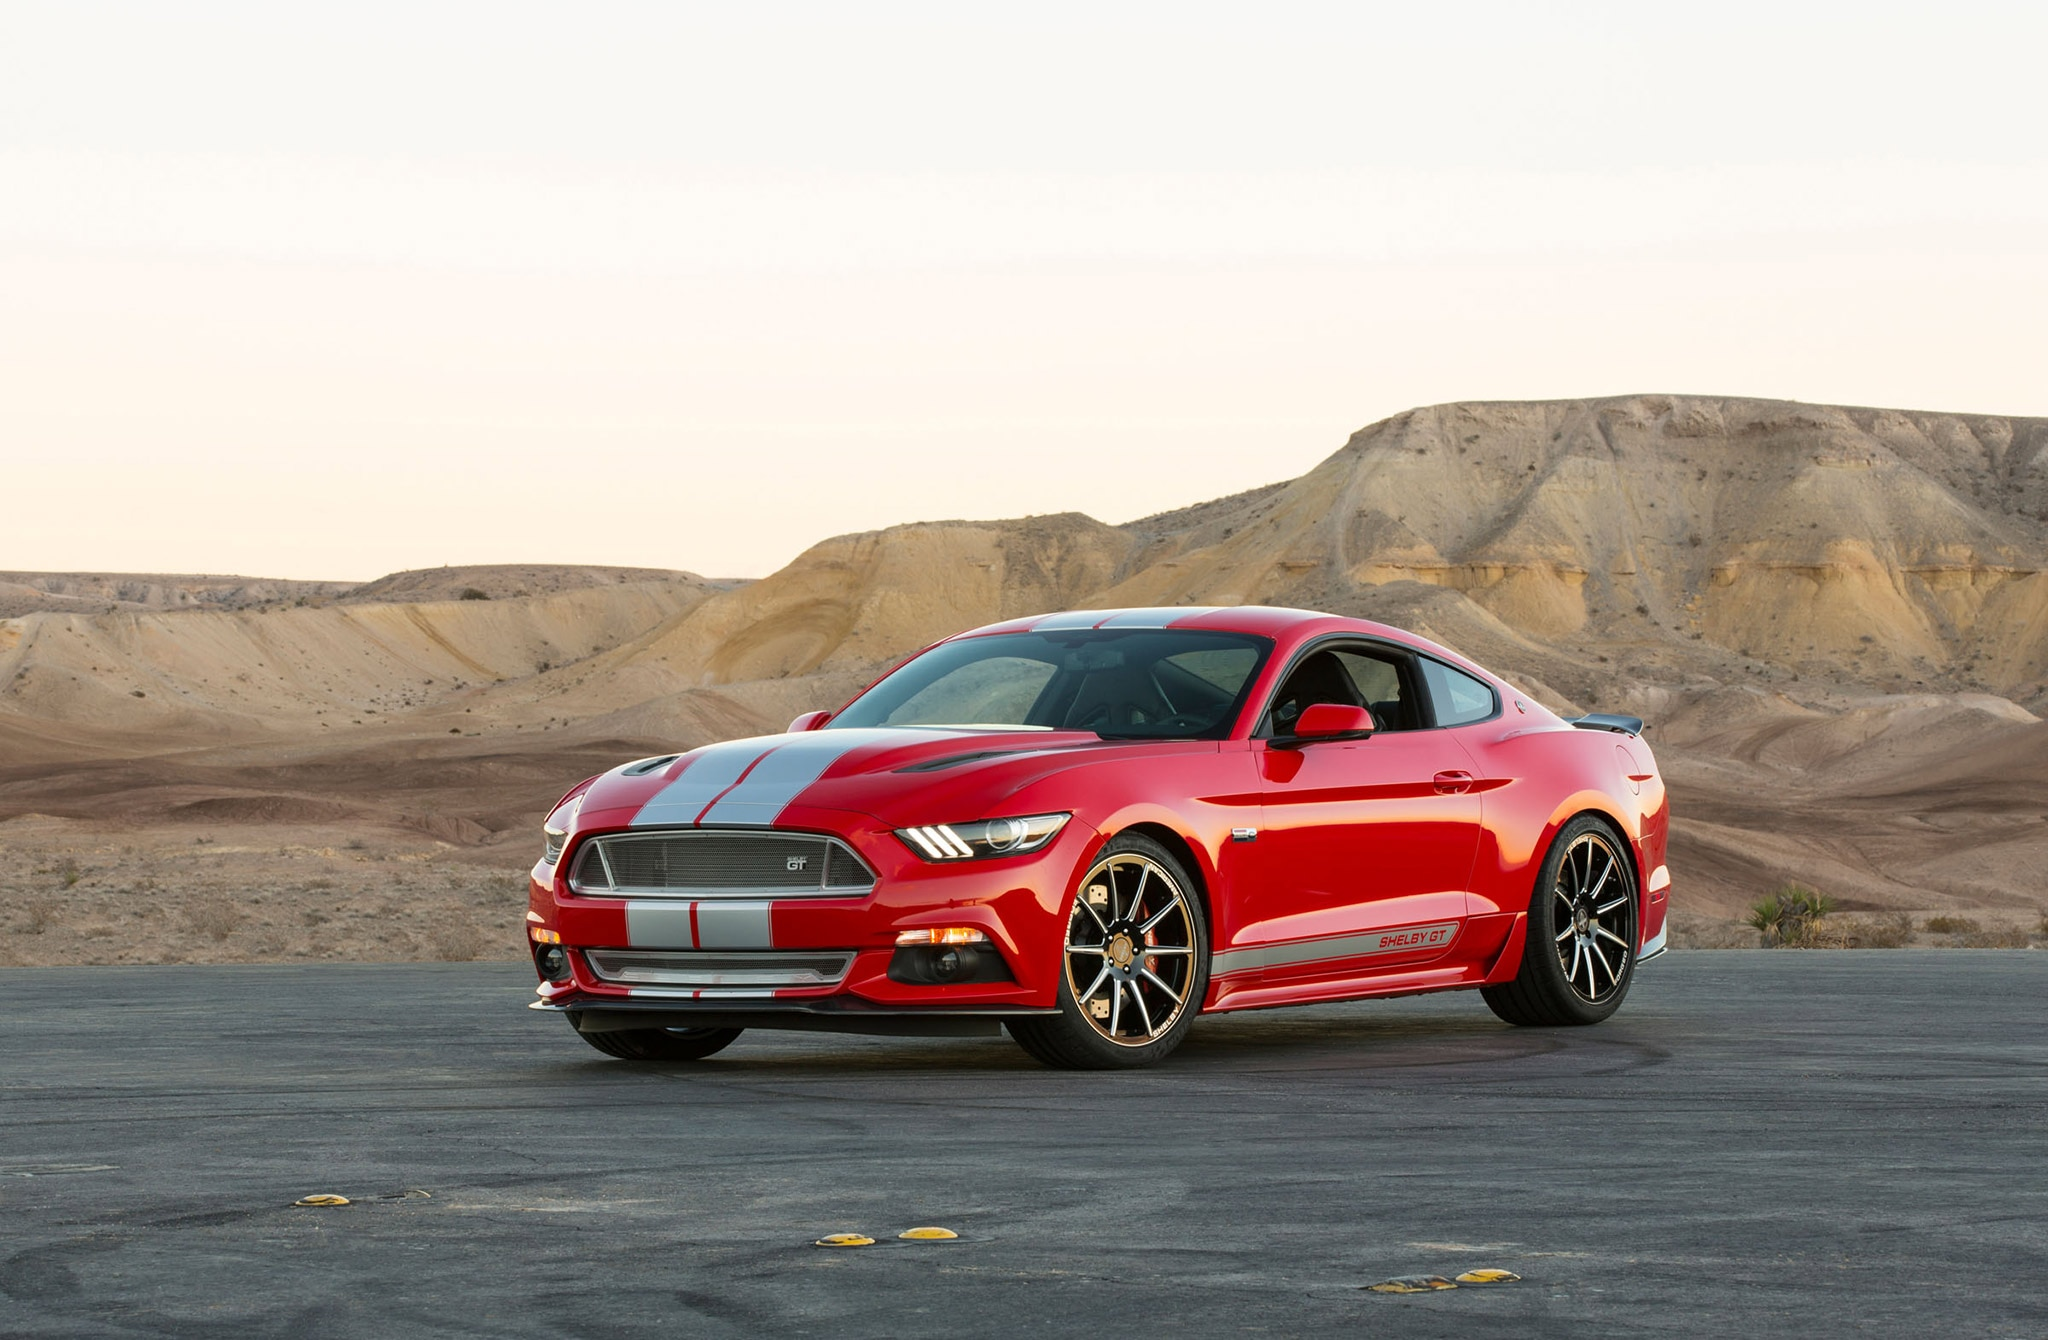 2015 Ford Mustang Shelby Gt Red Gray